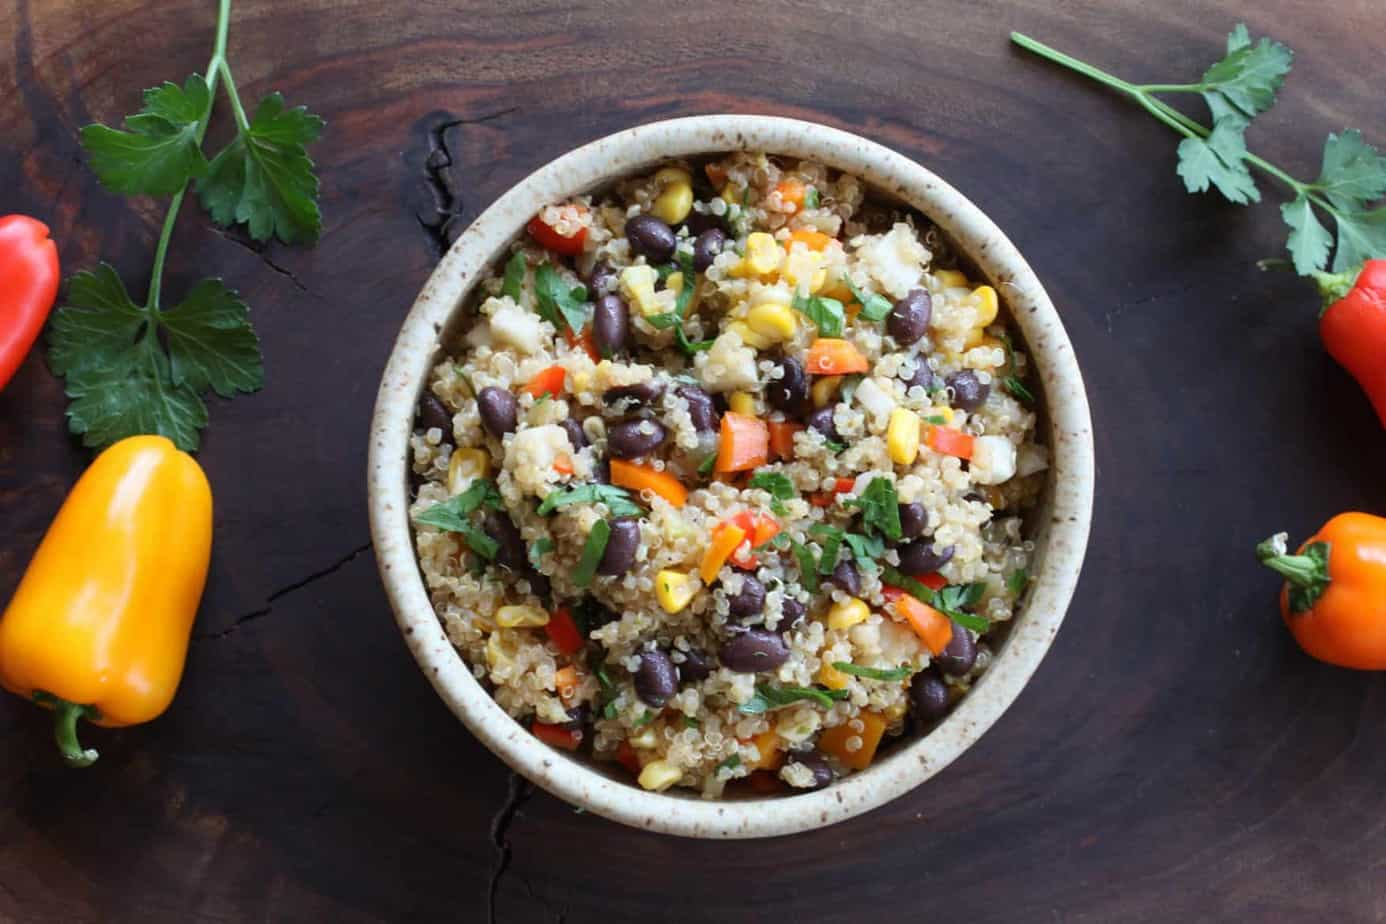 Black Bean Quinoa Salad | This high protein, high fiber vegetarian salad is filled with delicious real food. It is easy to make and keeps well. www.LiveBest.info